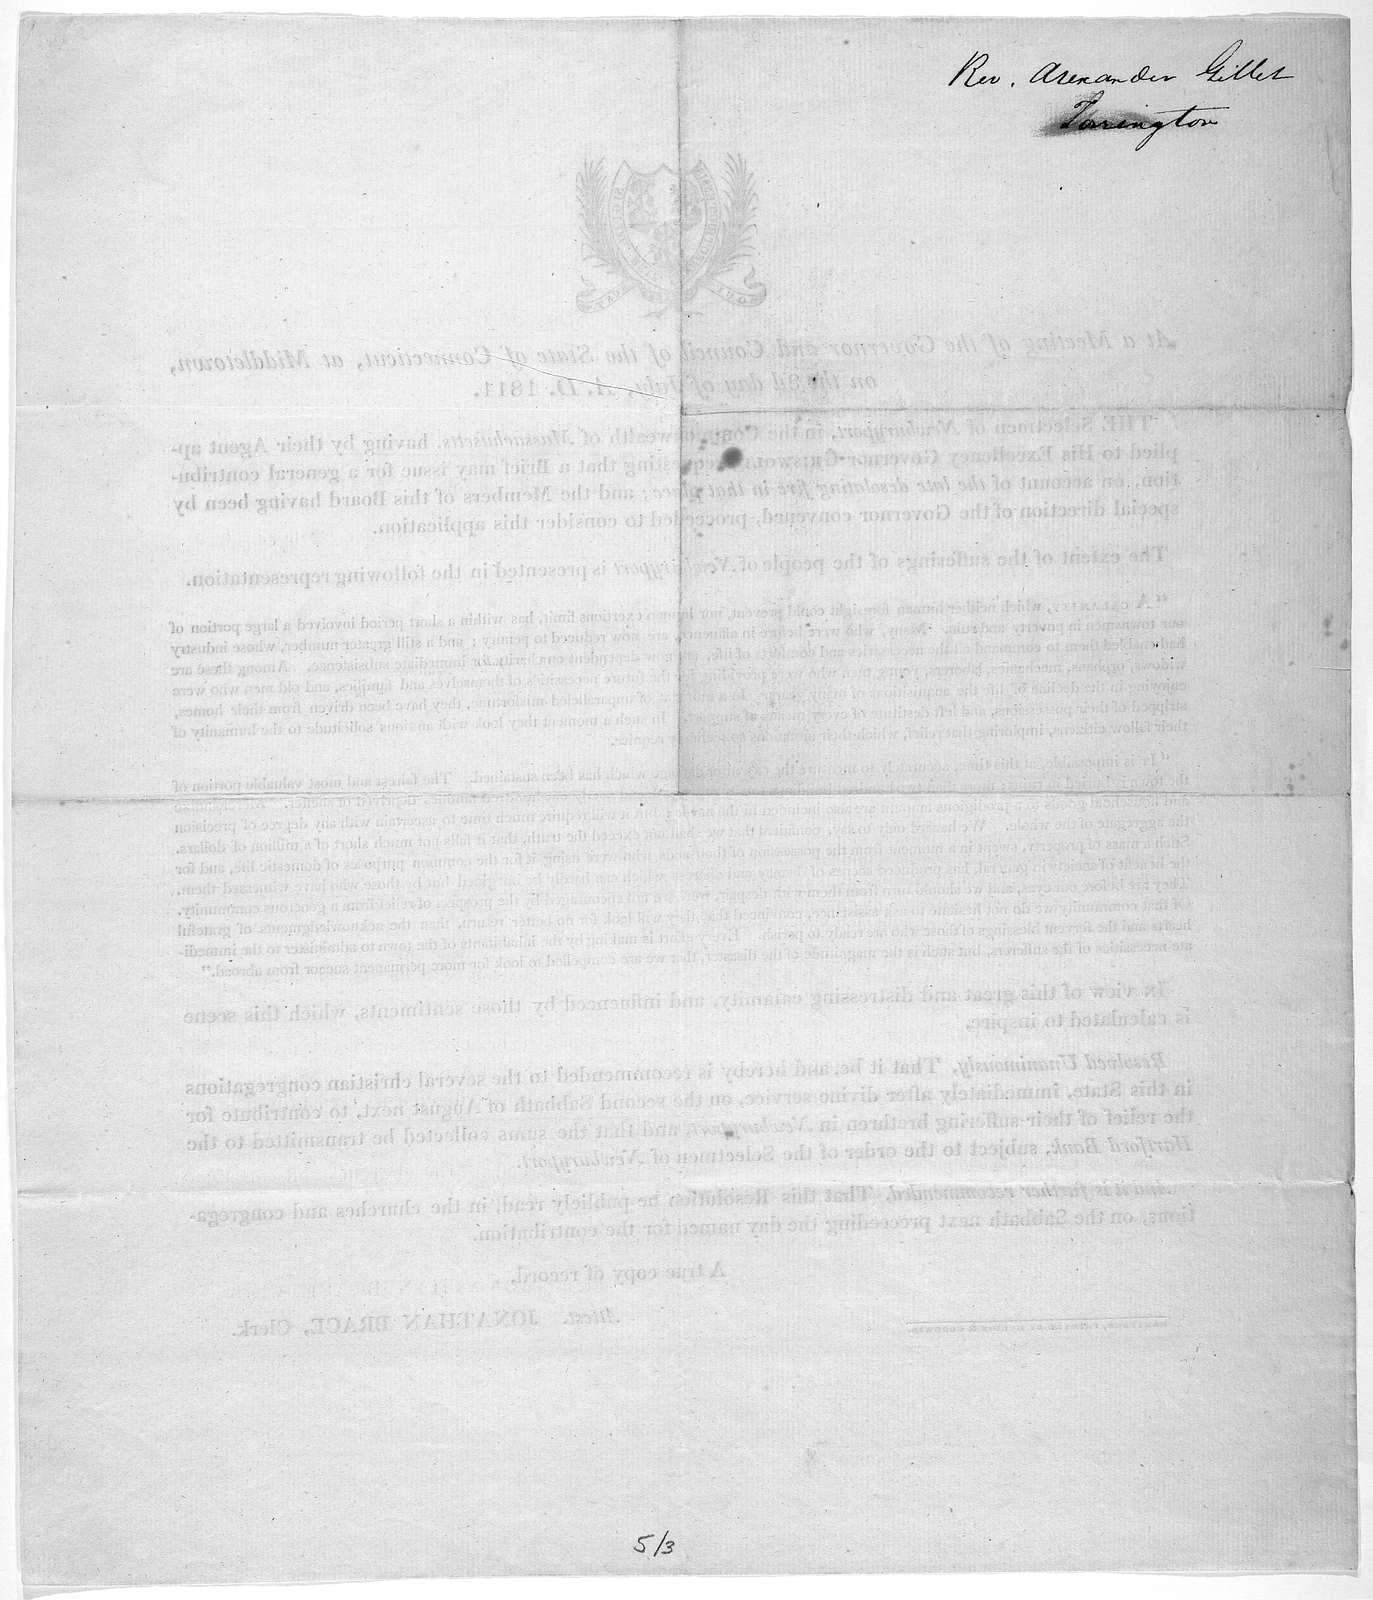 At a meeting of the Governor and Council of the State of Connecticut, at Middletown, on the 3d day of July A. D. 1811. The selectmen of Newburyport, in the Commonweath of Massachusetts, having by their agent applied to His Excellency Governor Gr